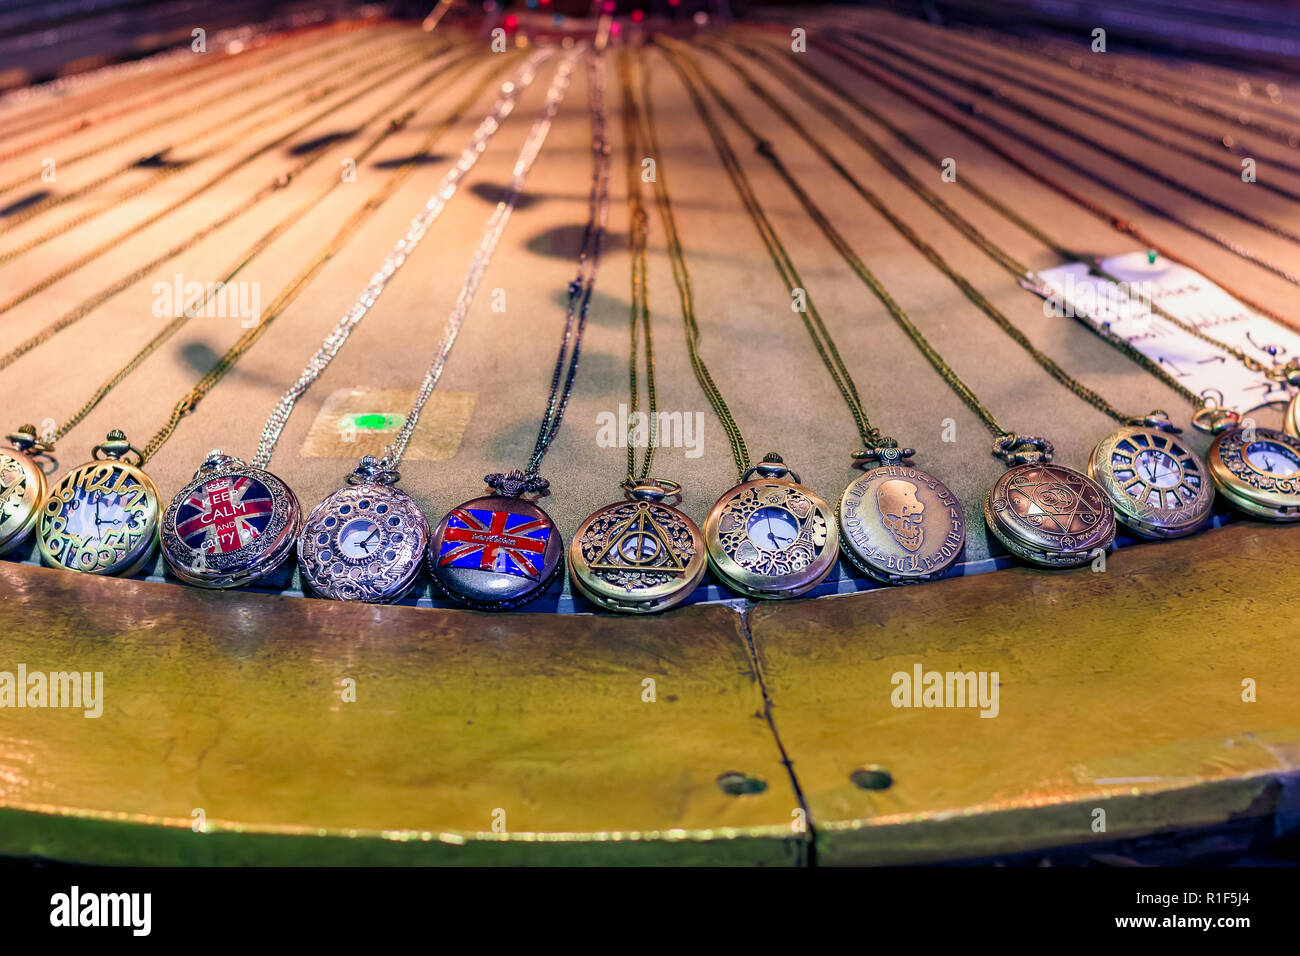 Assorted pocket watches on display at Camden Market in London - Stock Image